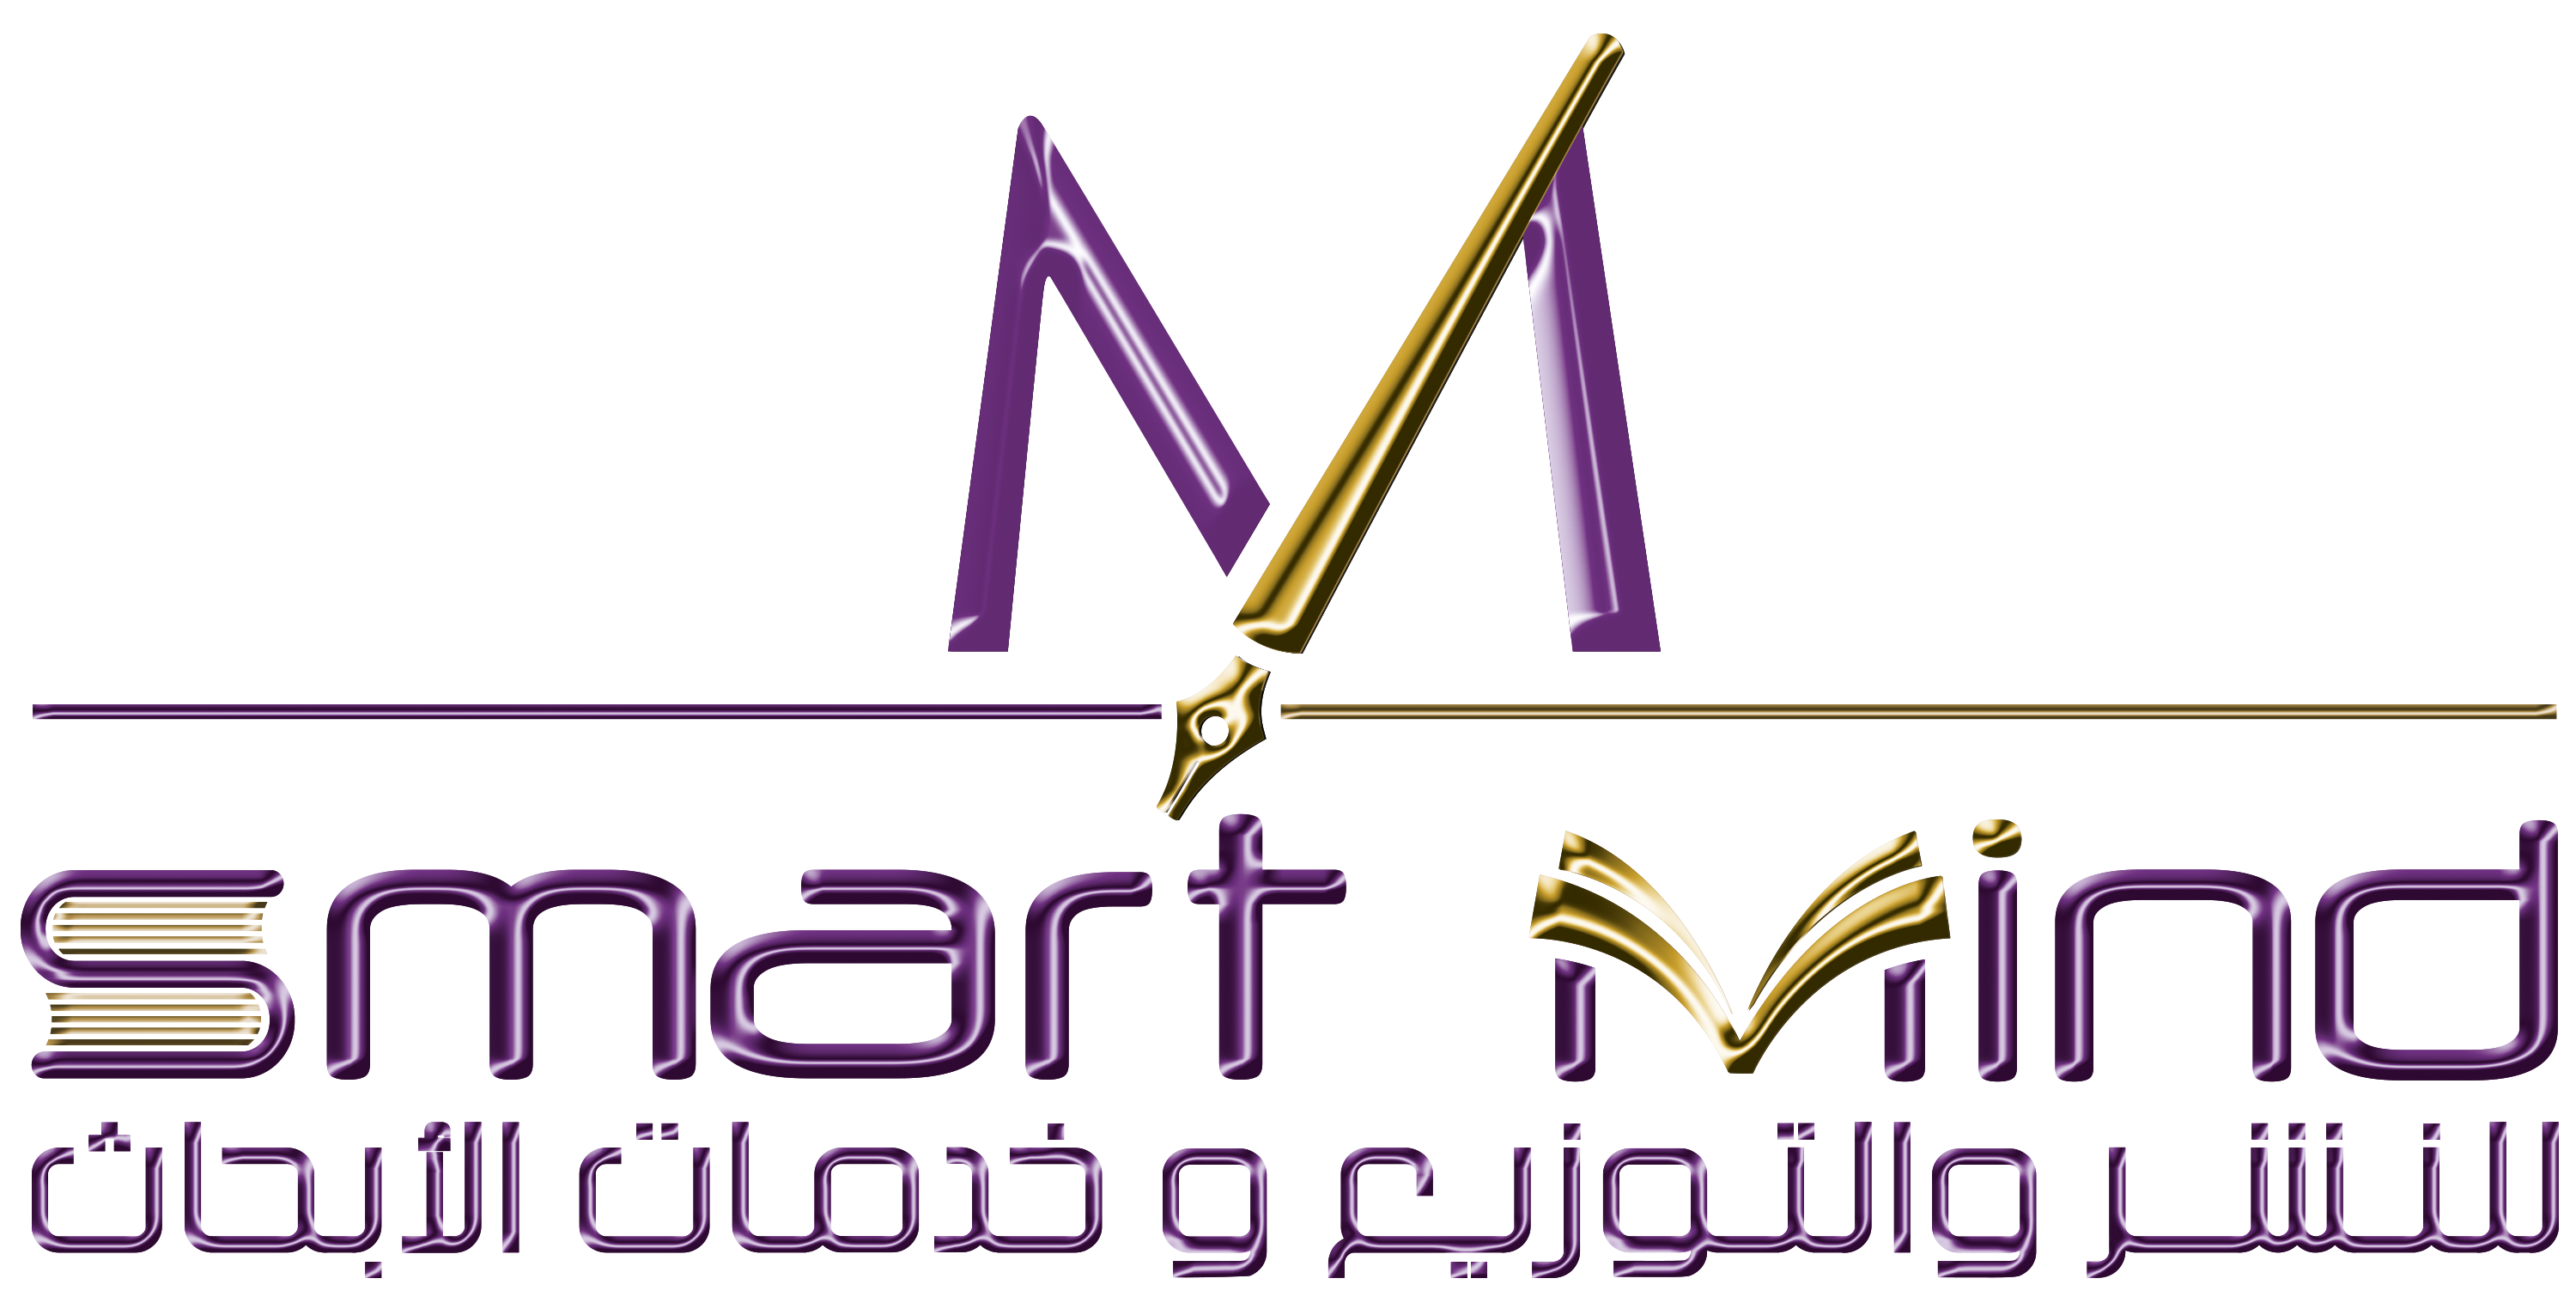 Smart Mind Publishing & Distribution & Research Services